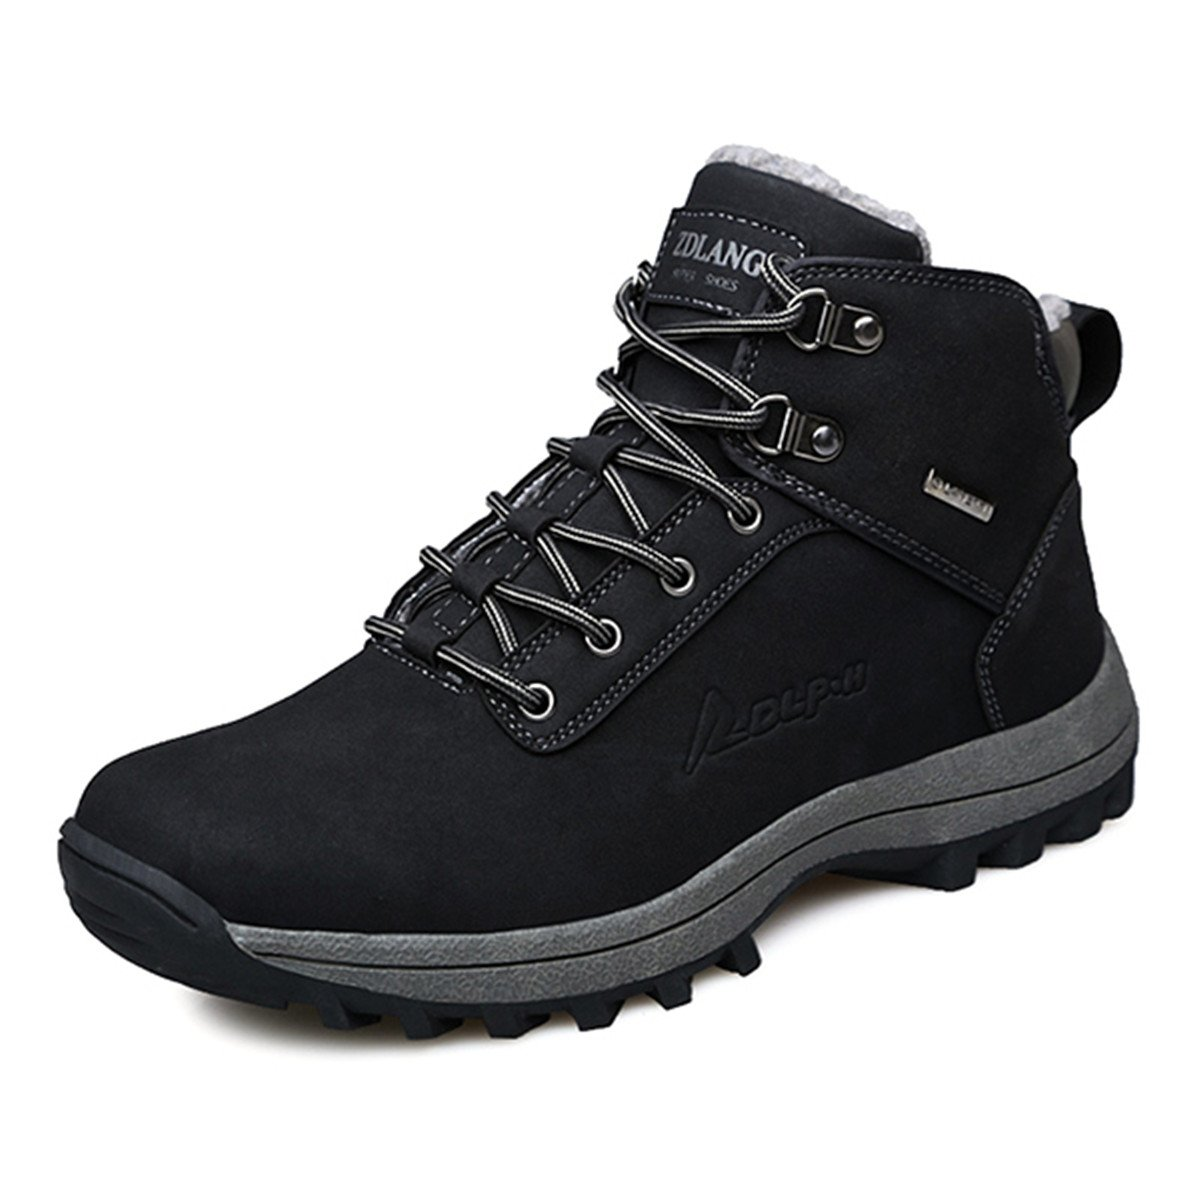 graocsy Men's Work Boots, Leather Snow Boots with Warm Lined Waterproof Winter Ankle Shoes Black 10.5 M US